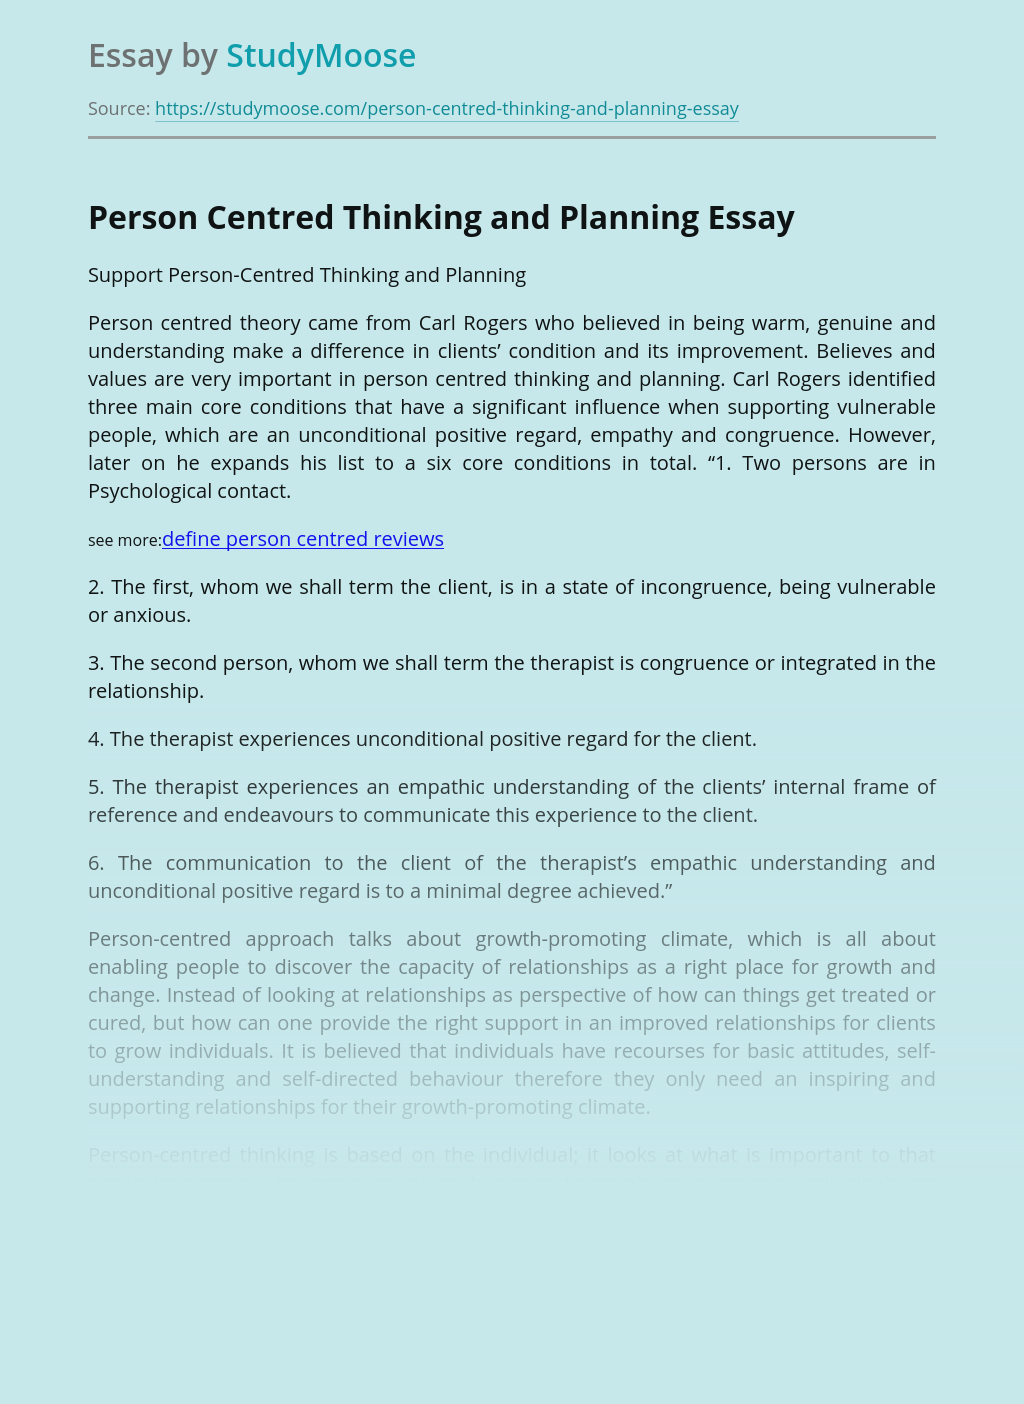 Person Centred Thinking and Planning